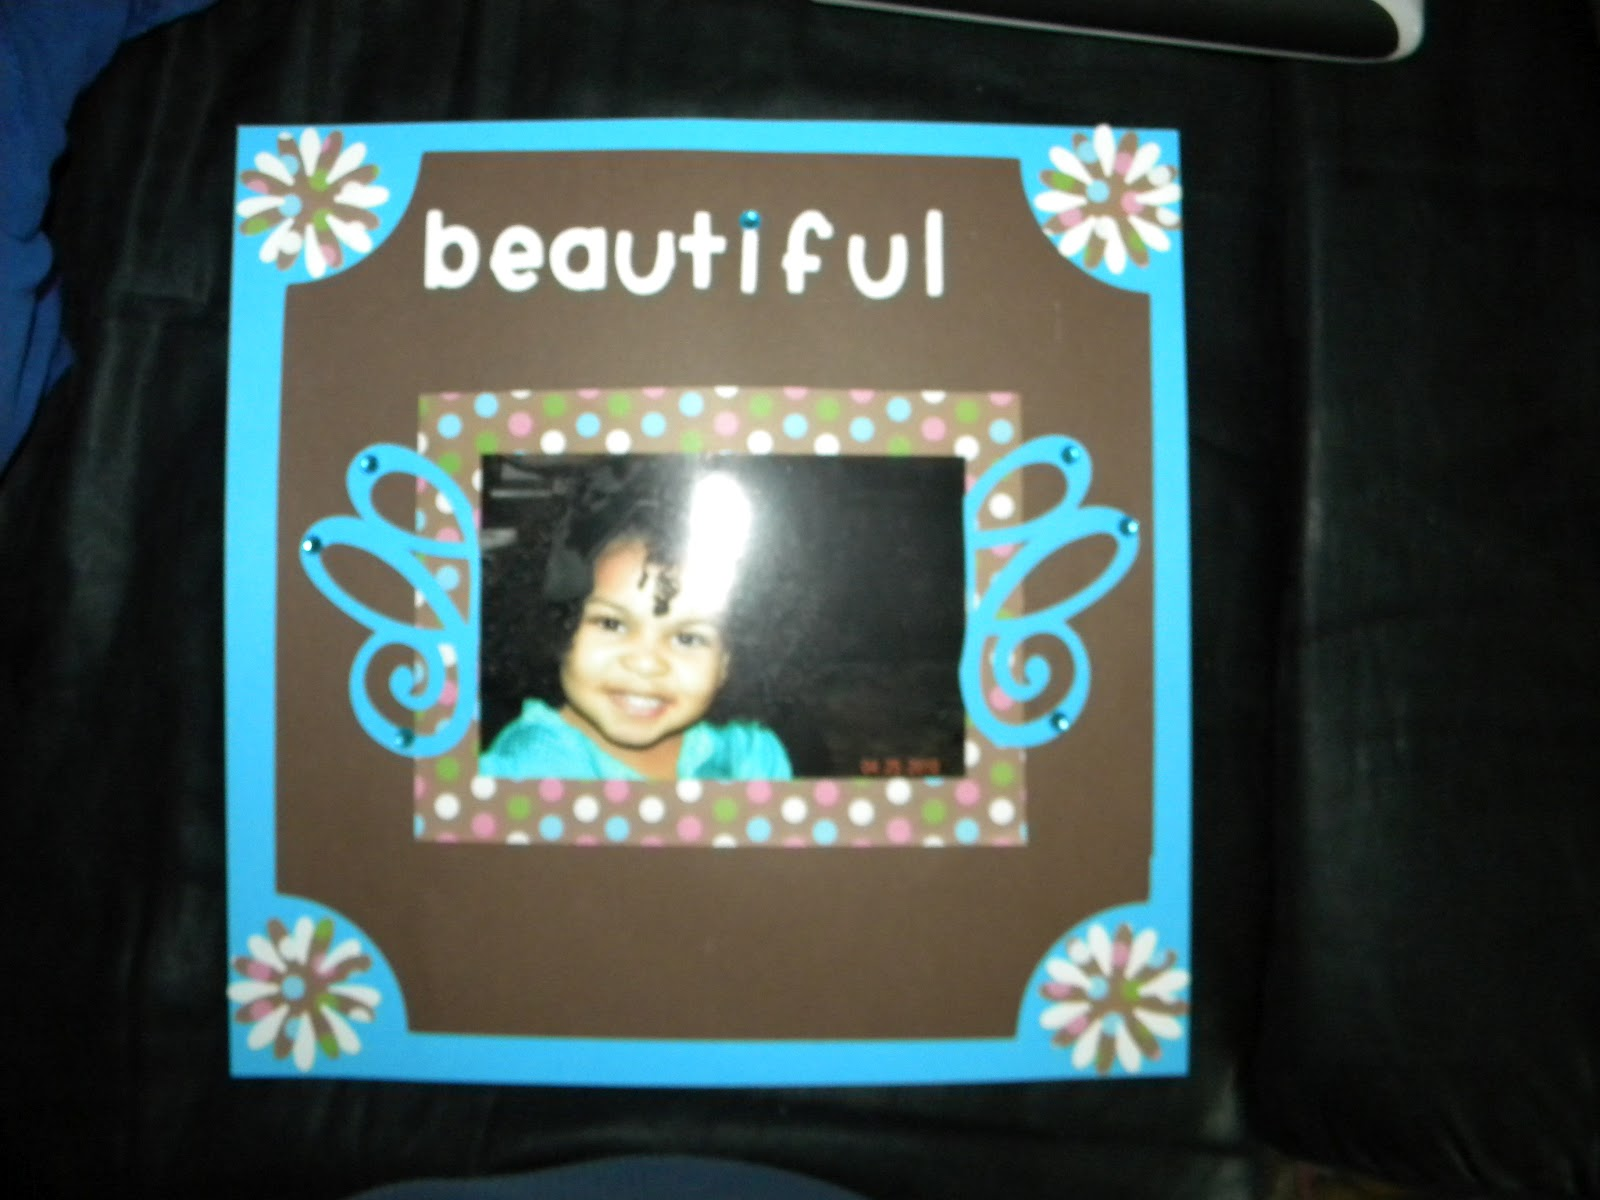 Scrapbook ideas about friends - This Is One Of My Fav Scrapbook Pages Because Its So Simple But Really Cute I Used A Regular 12x12 Brown Scrapbook Paper Then I Also Used A Piece Of